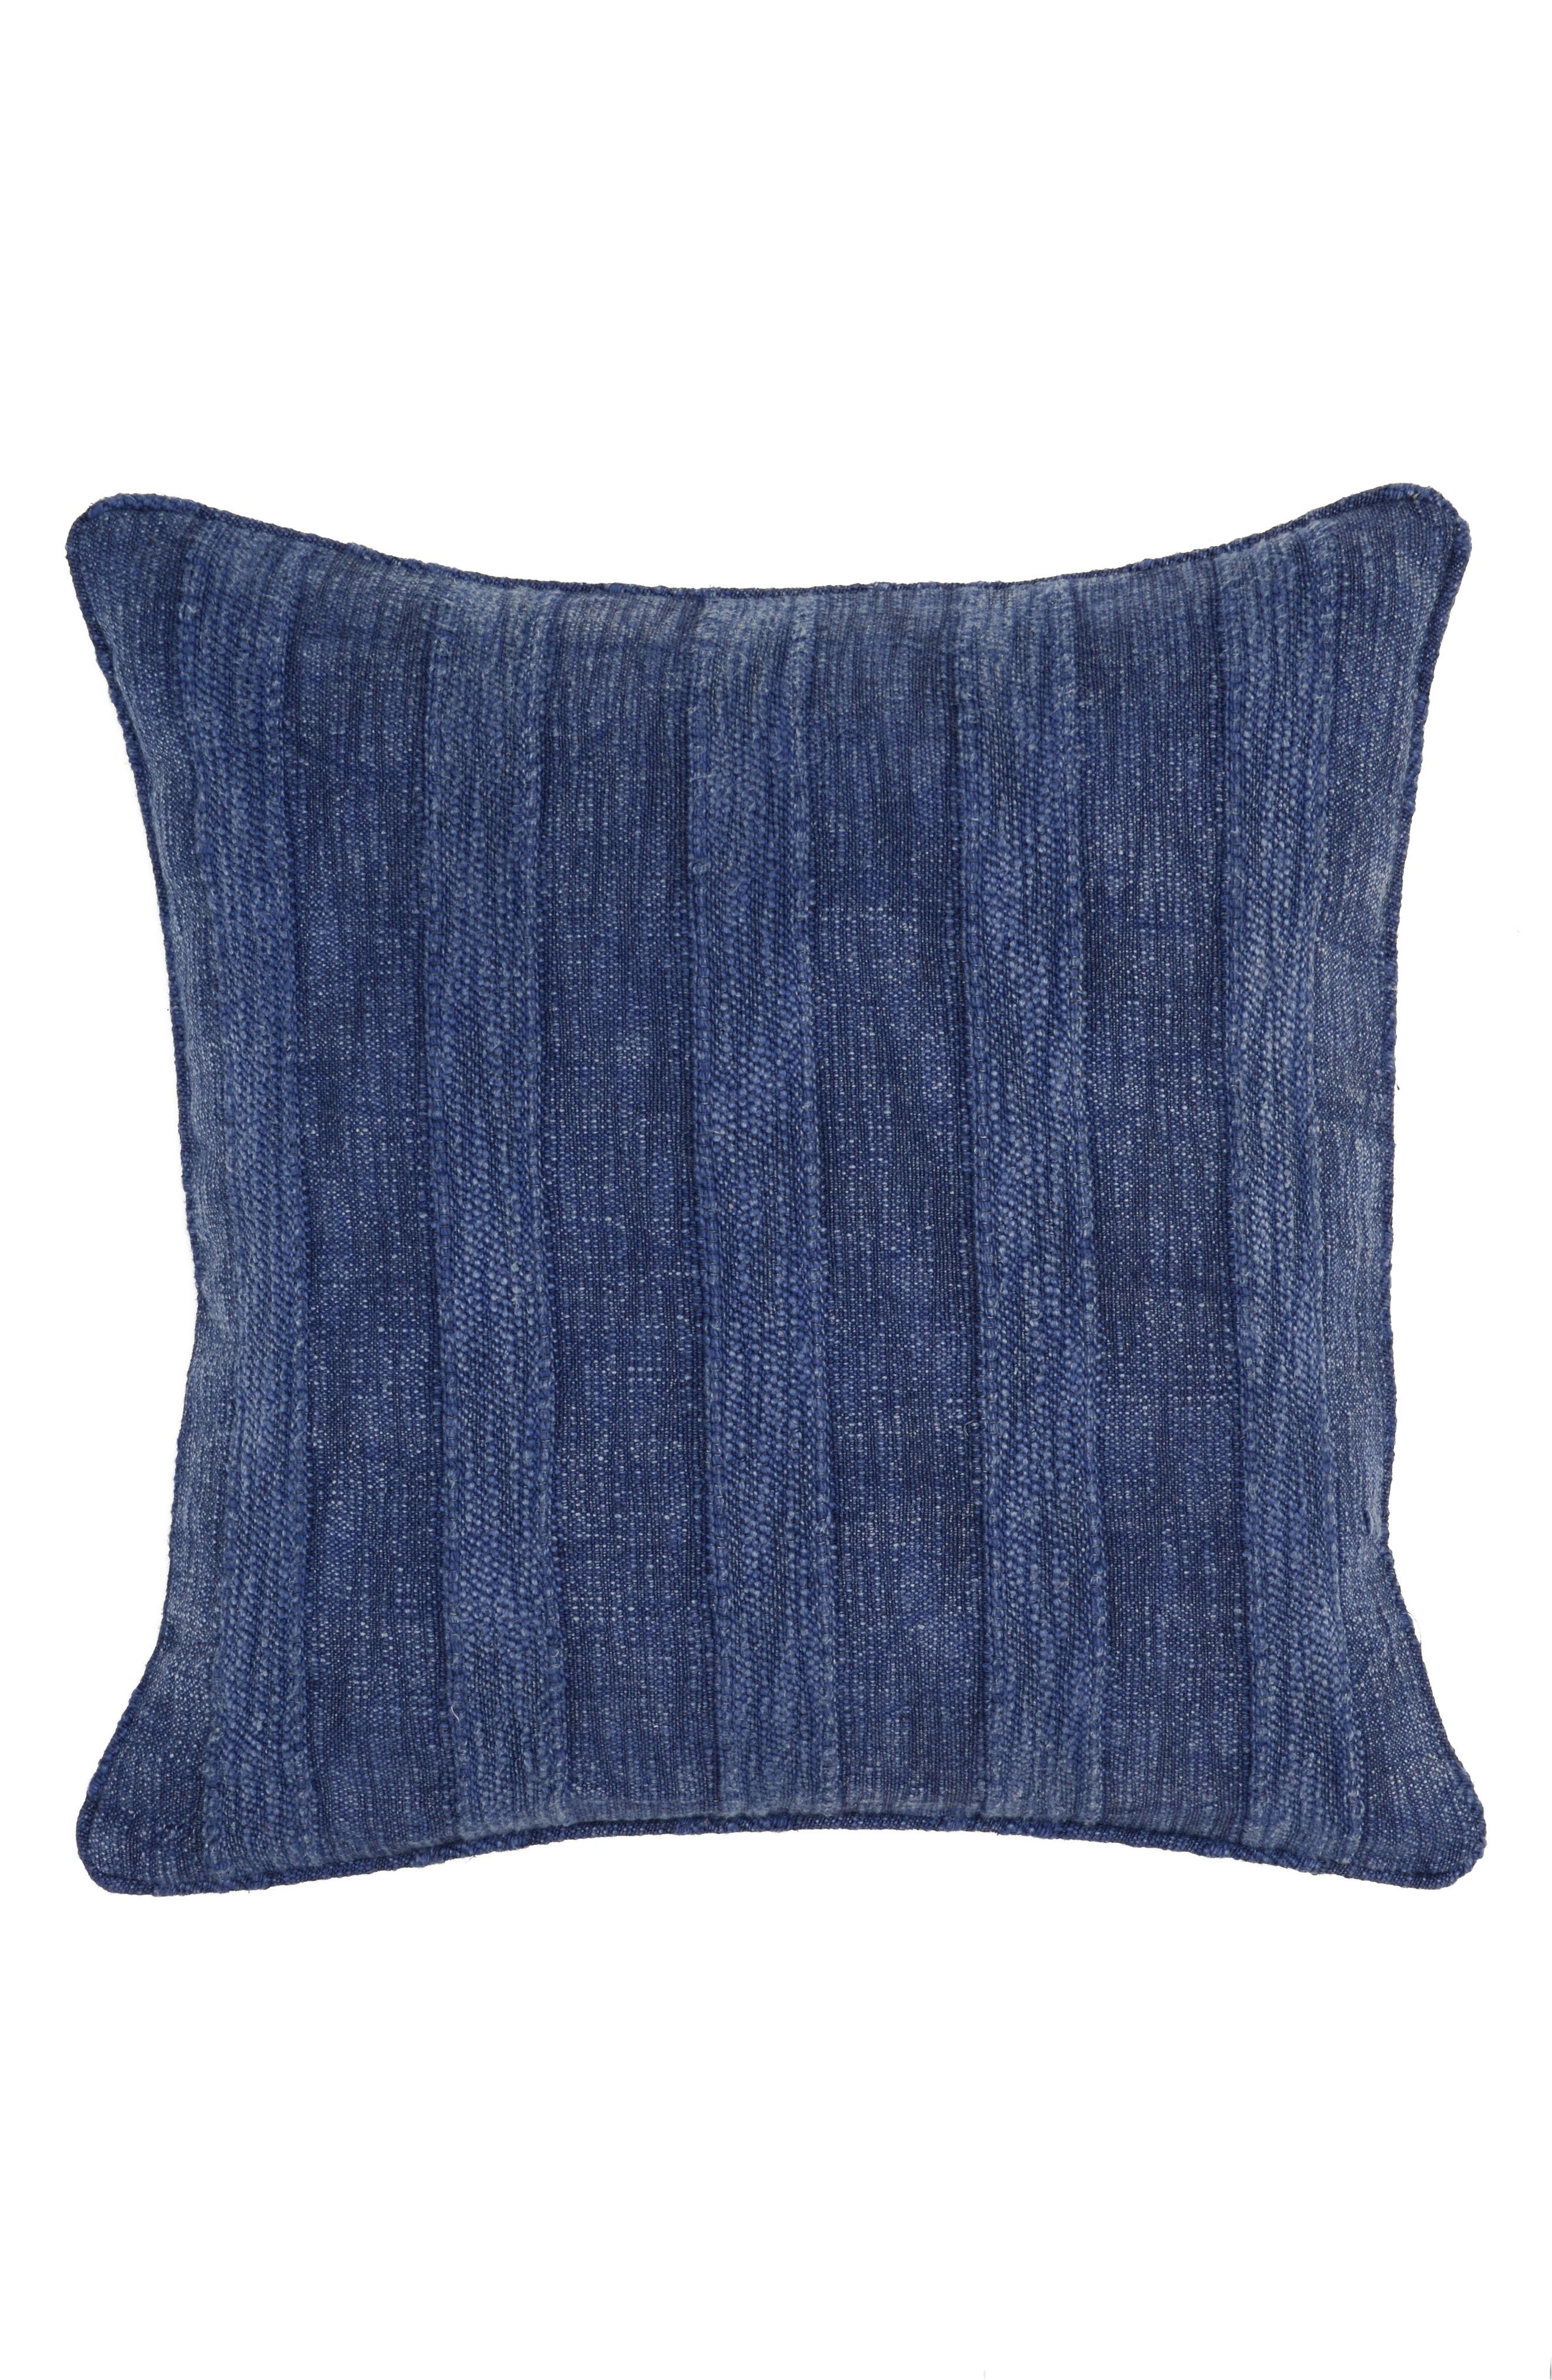 Alternate Image 1 Selected - Villa Home Collection Heirloom Pillow